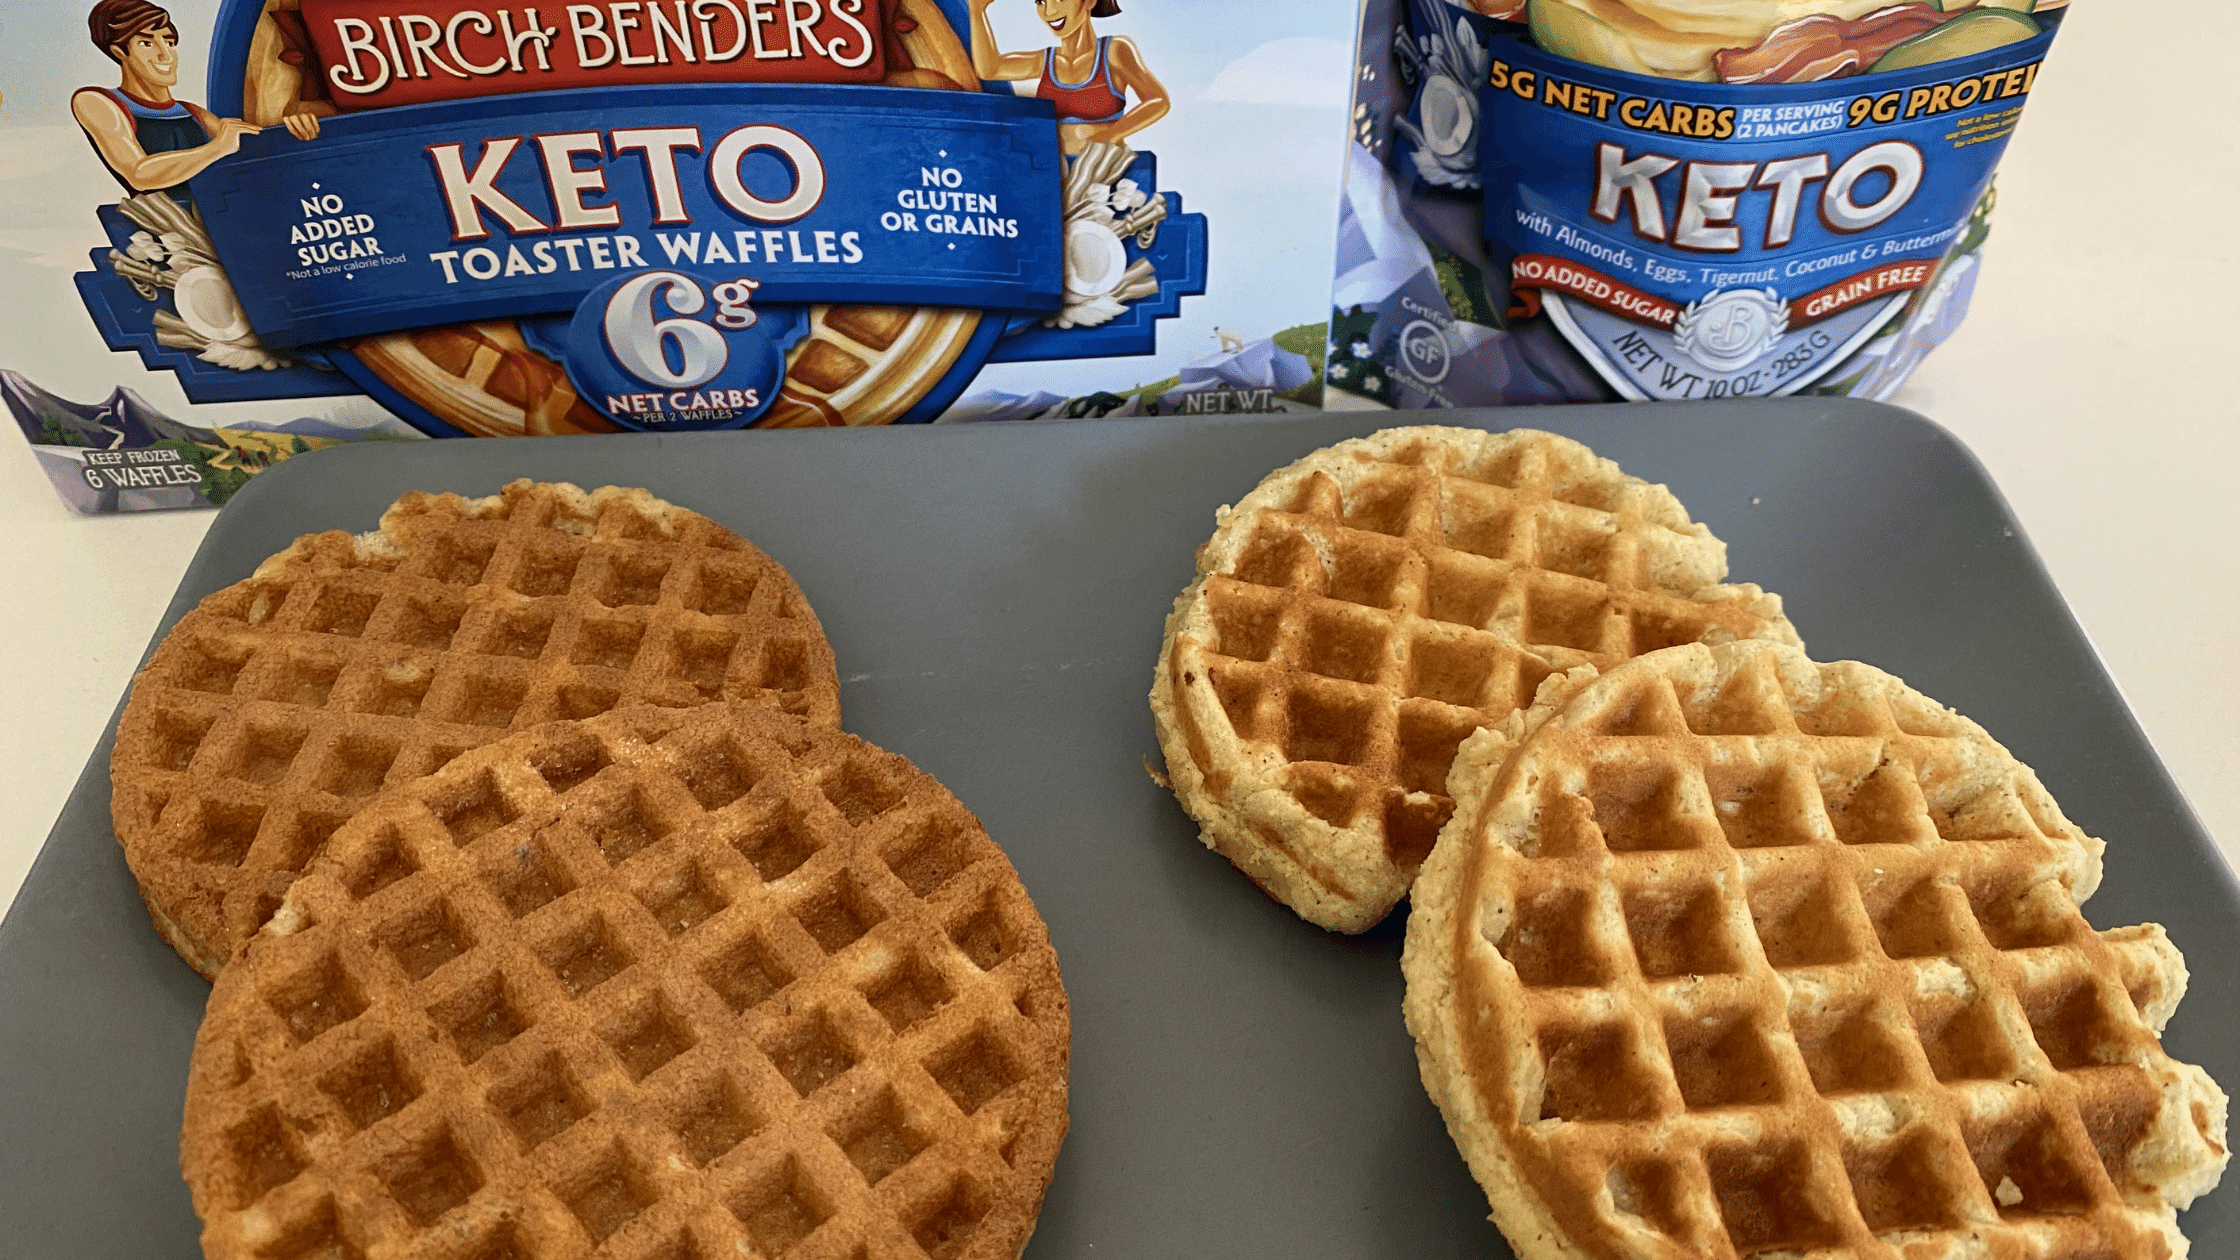 Birch Benders waffle Review